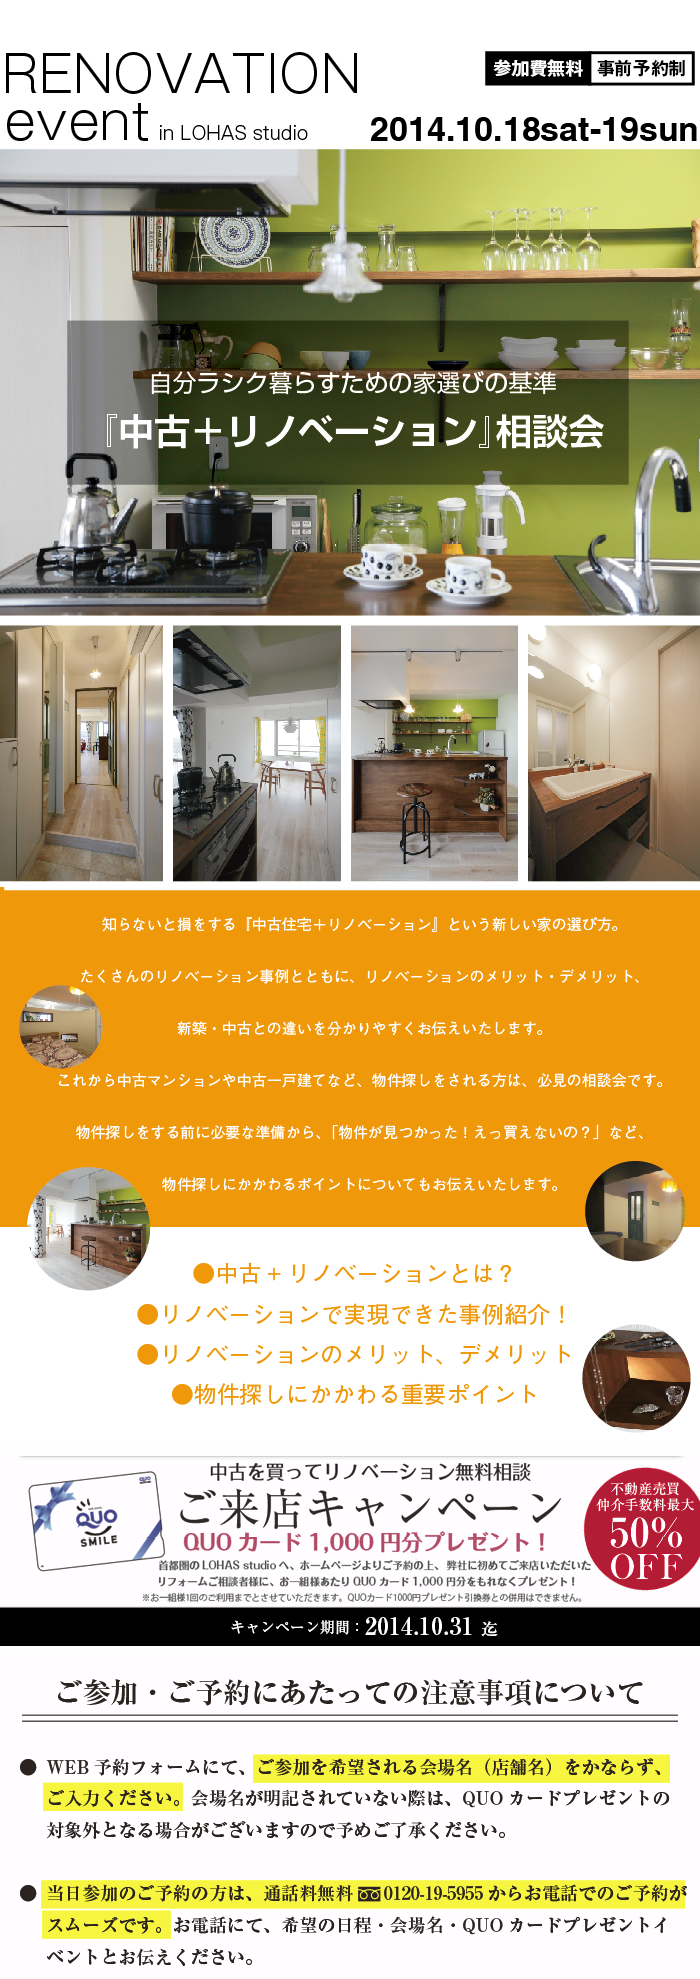 2014101819_renovation_event.png